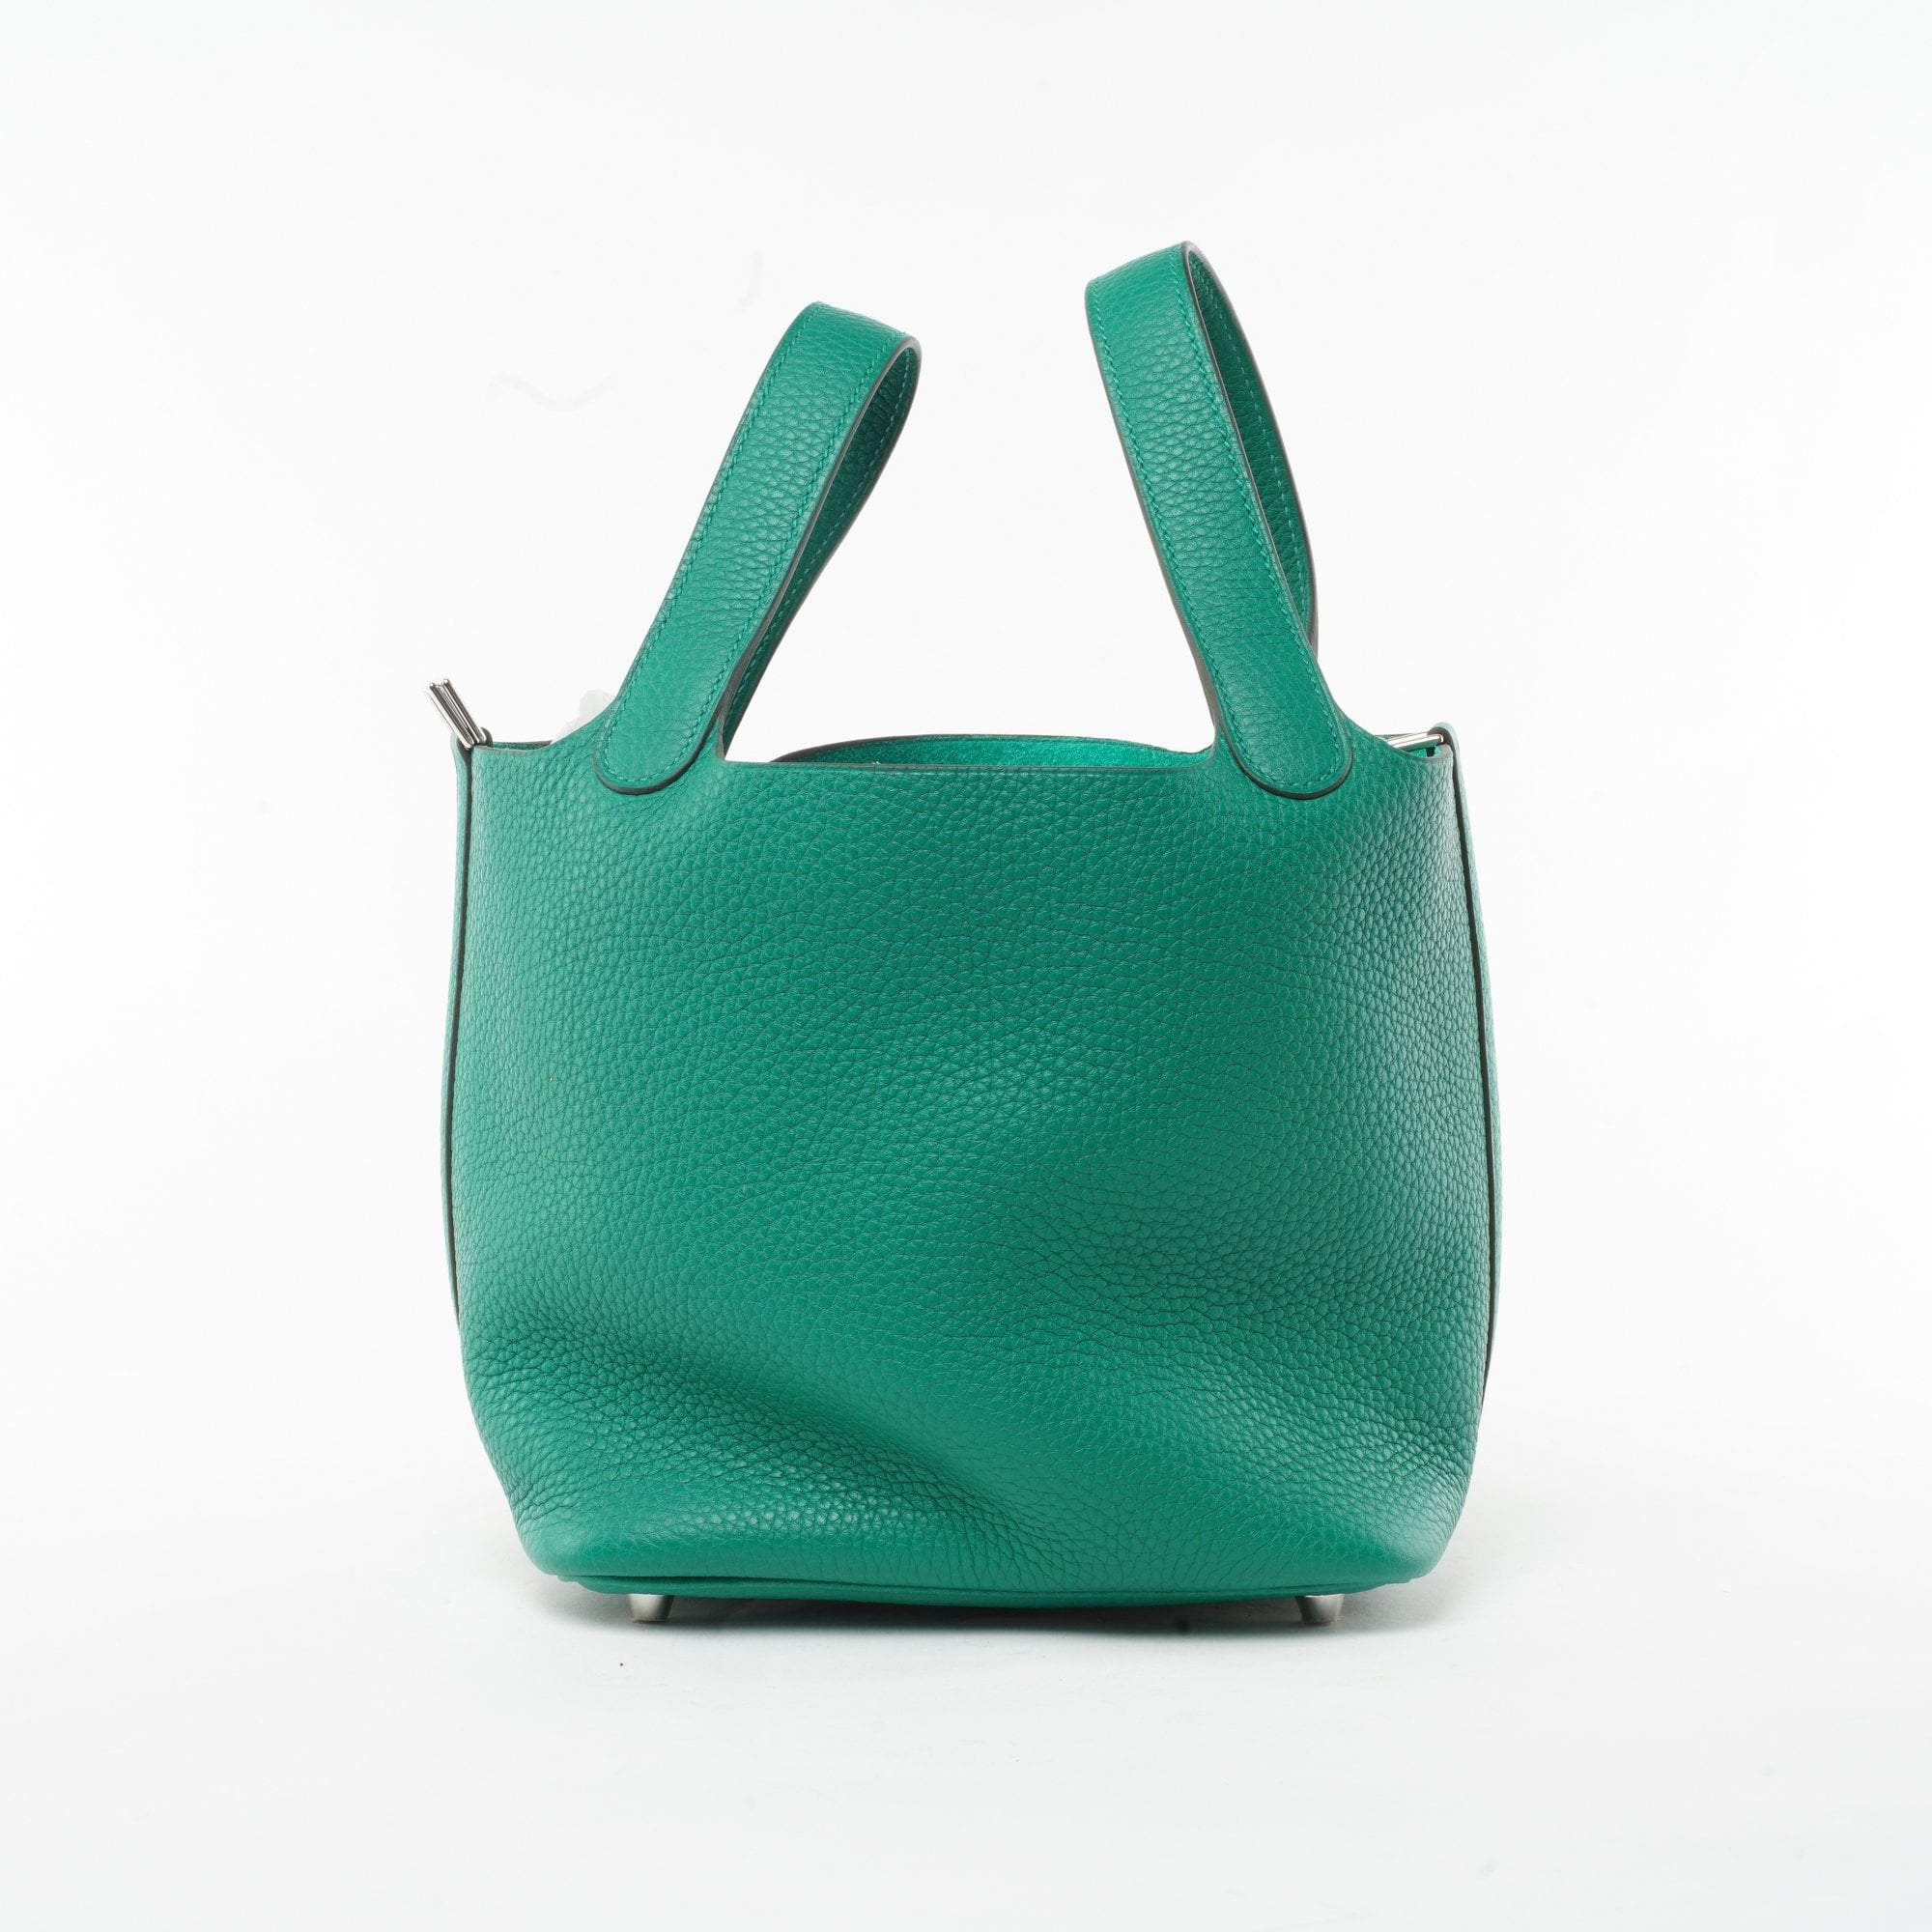 Hermes Green Clemence Leather Picotin 18 PM Bag